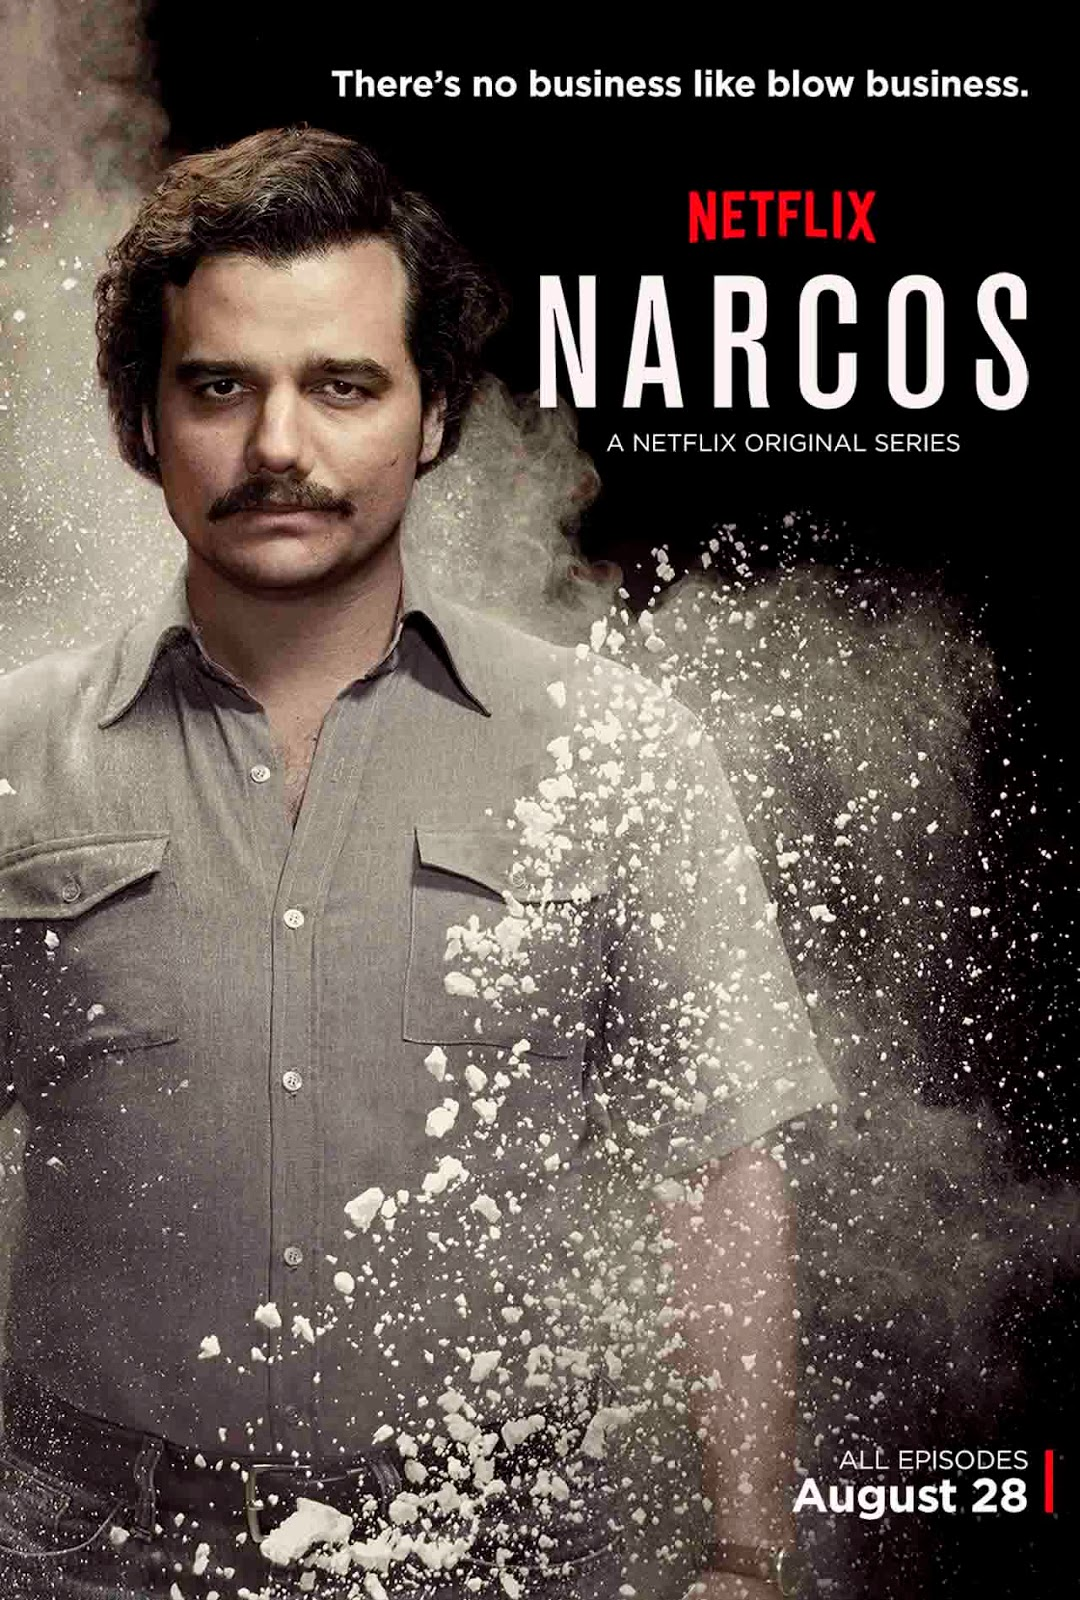 Narcos 1ª Temporada Torrent - Blu-ray Rip 720p Dual Áudio (2015)